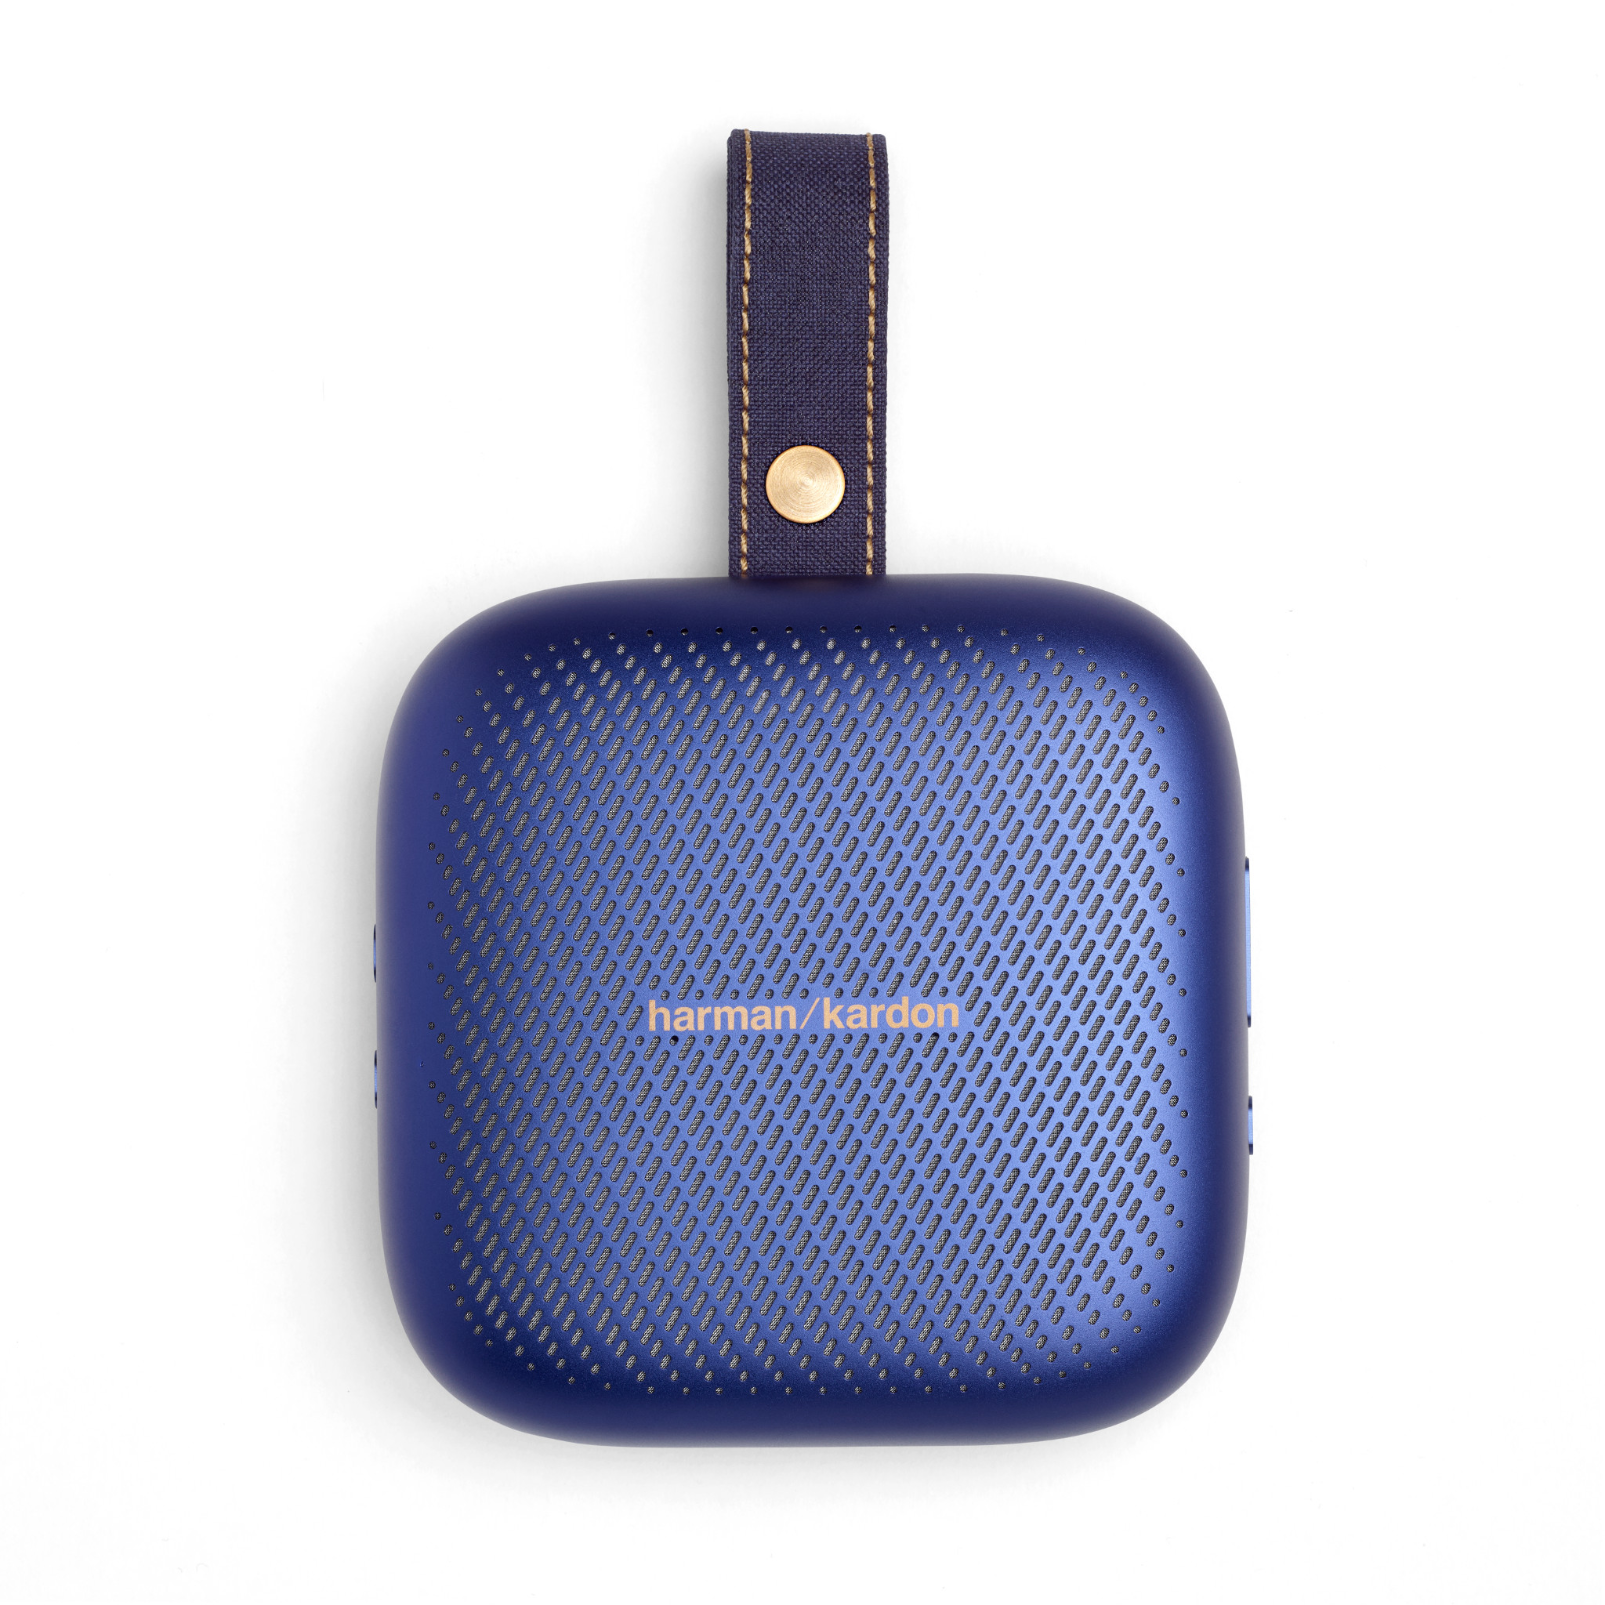 Harman Kardon Neo - Midnight Blue - Portable Bluetooth speaker - Detailshot 3